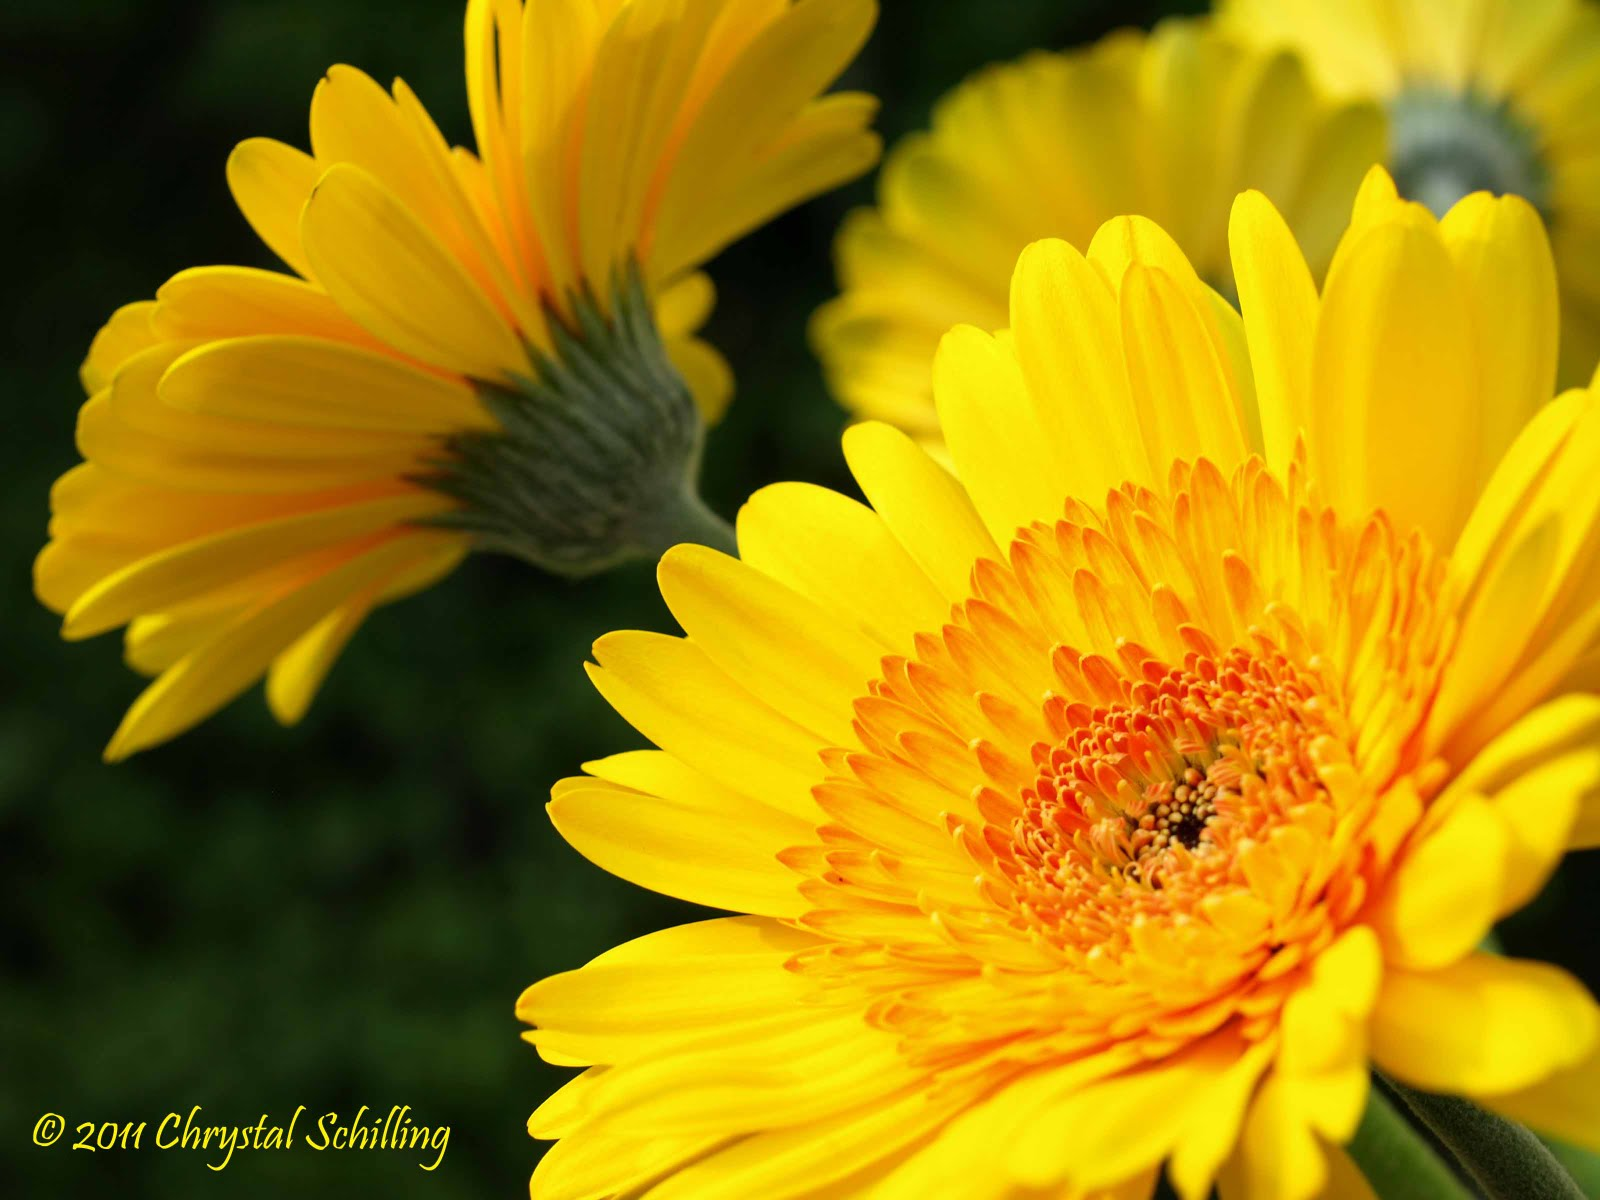 Chrystal Schilling Photography Photo 89 365 Birthday Flowers Close Up